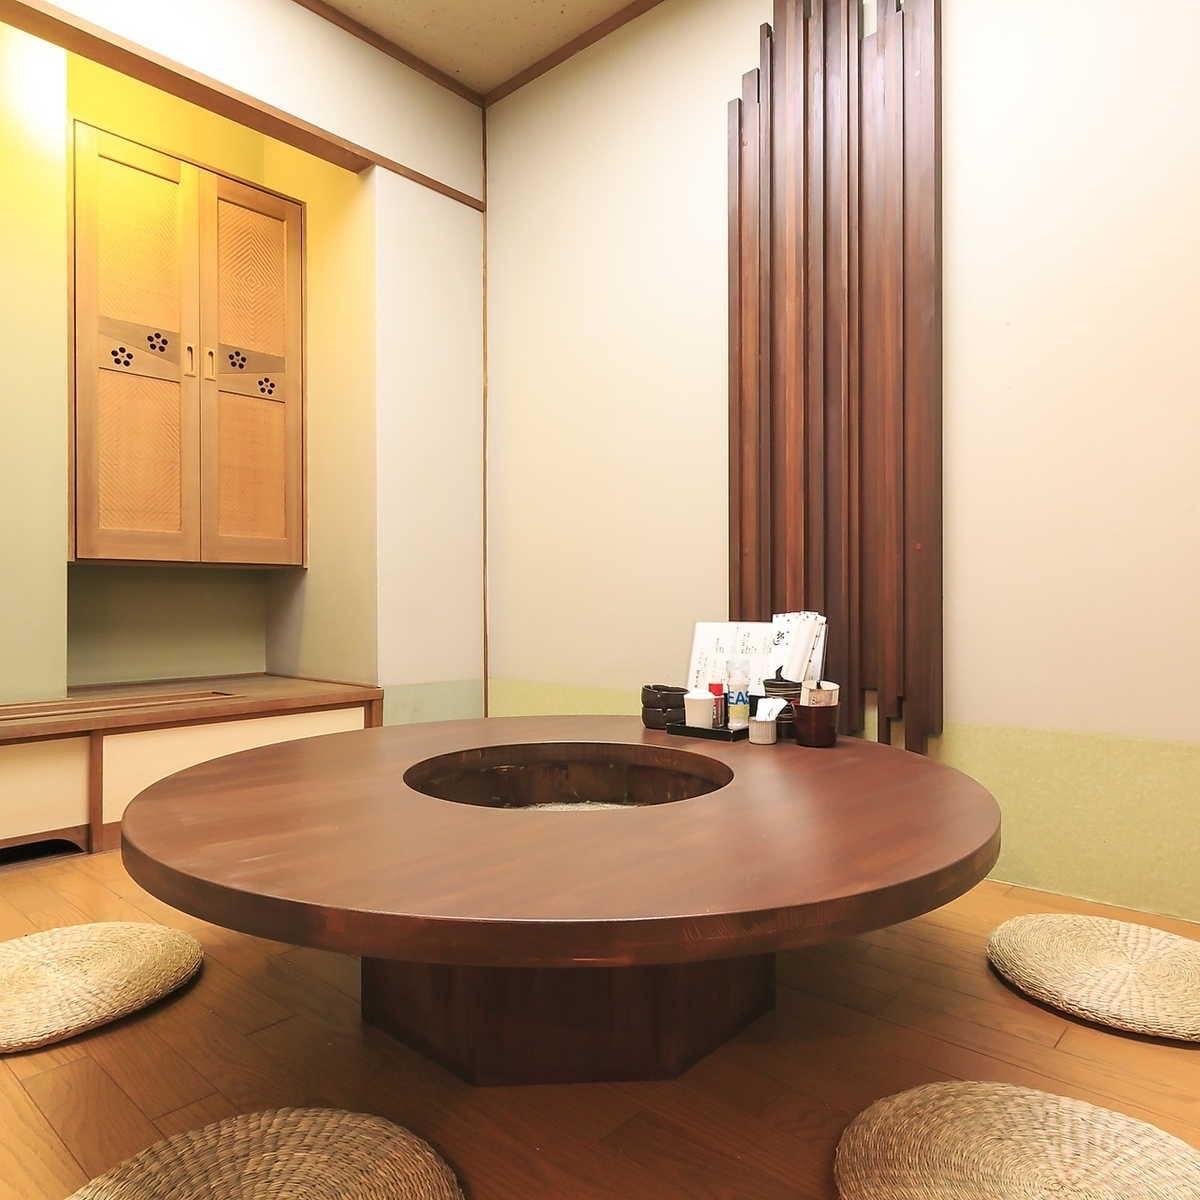 [2nd Floor] Private room for 2 to 10 people is enriched ★ Roundtable is limited to 2 rooms